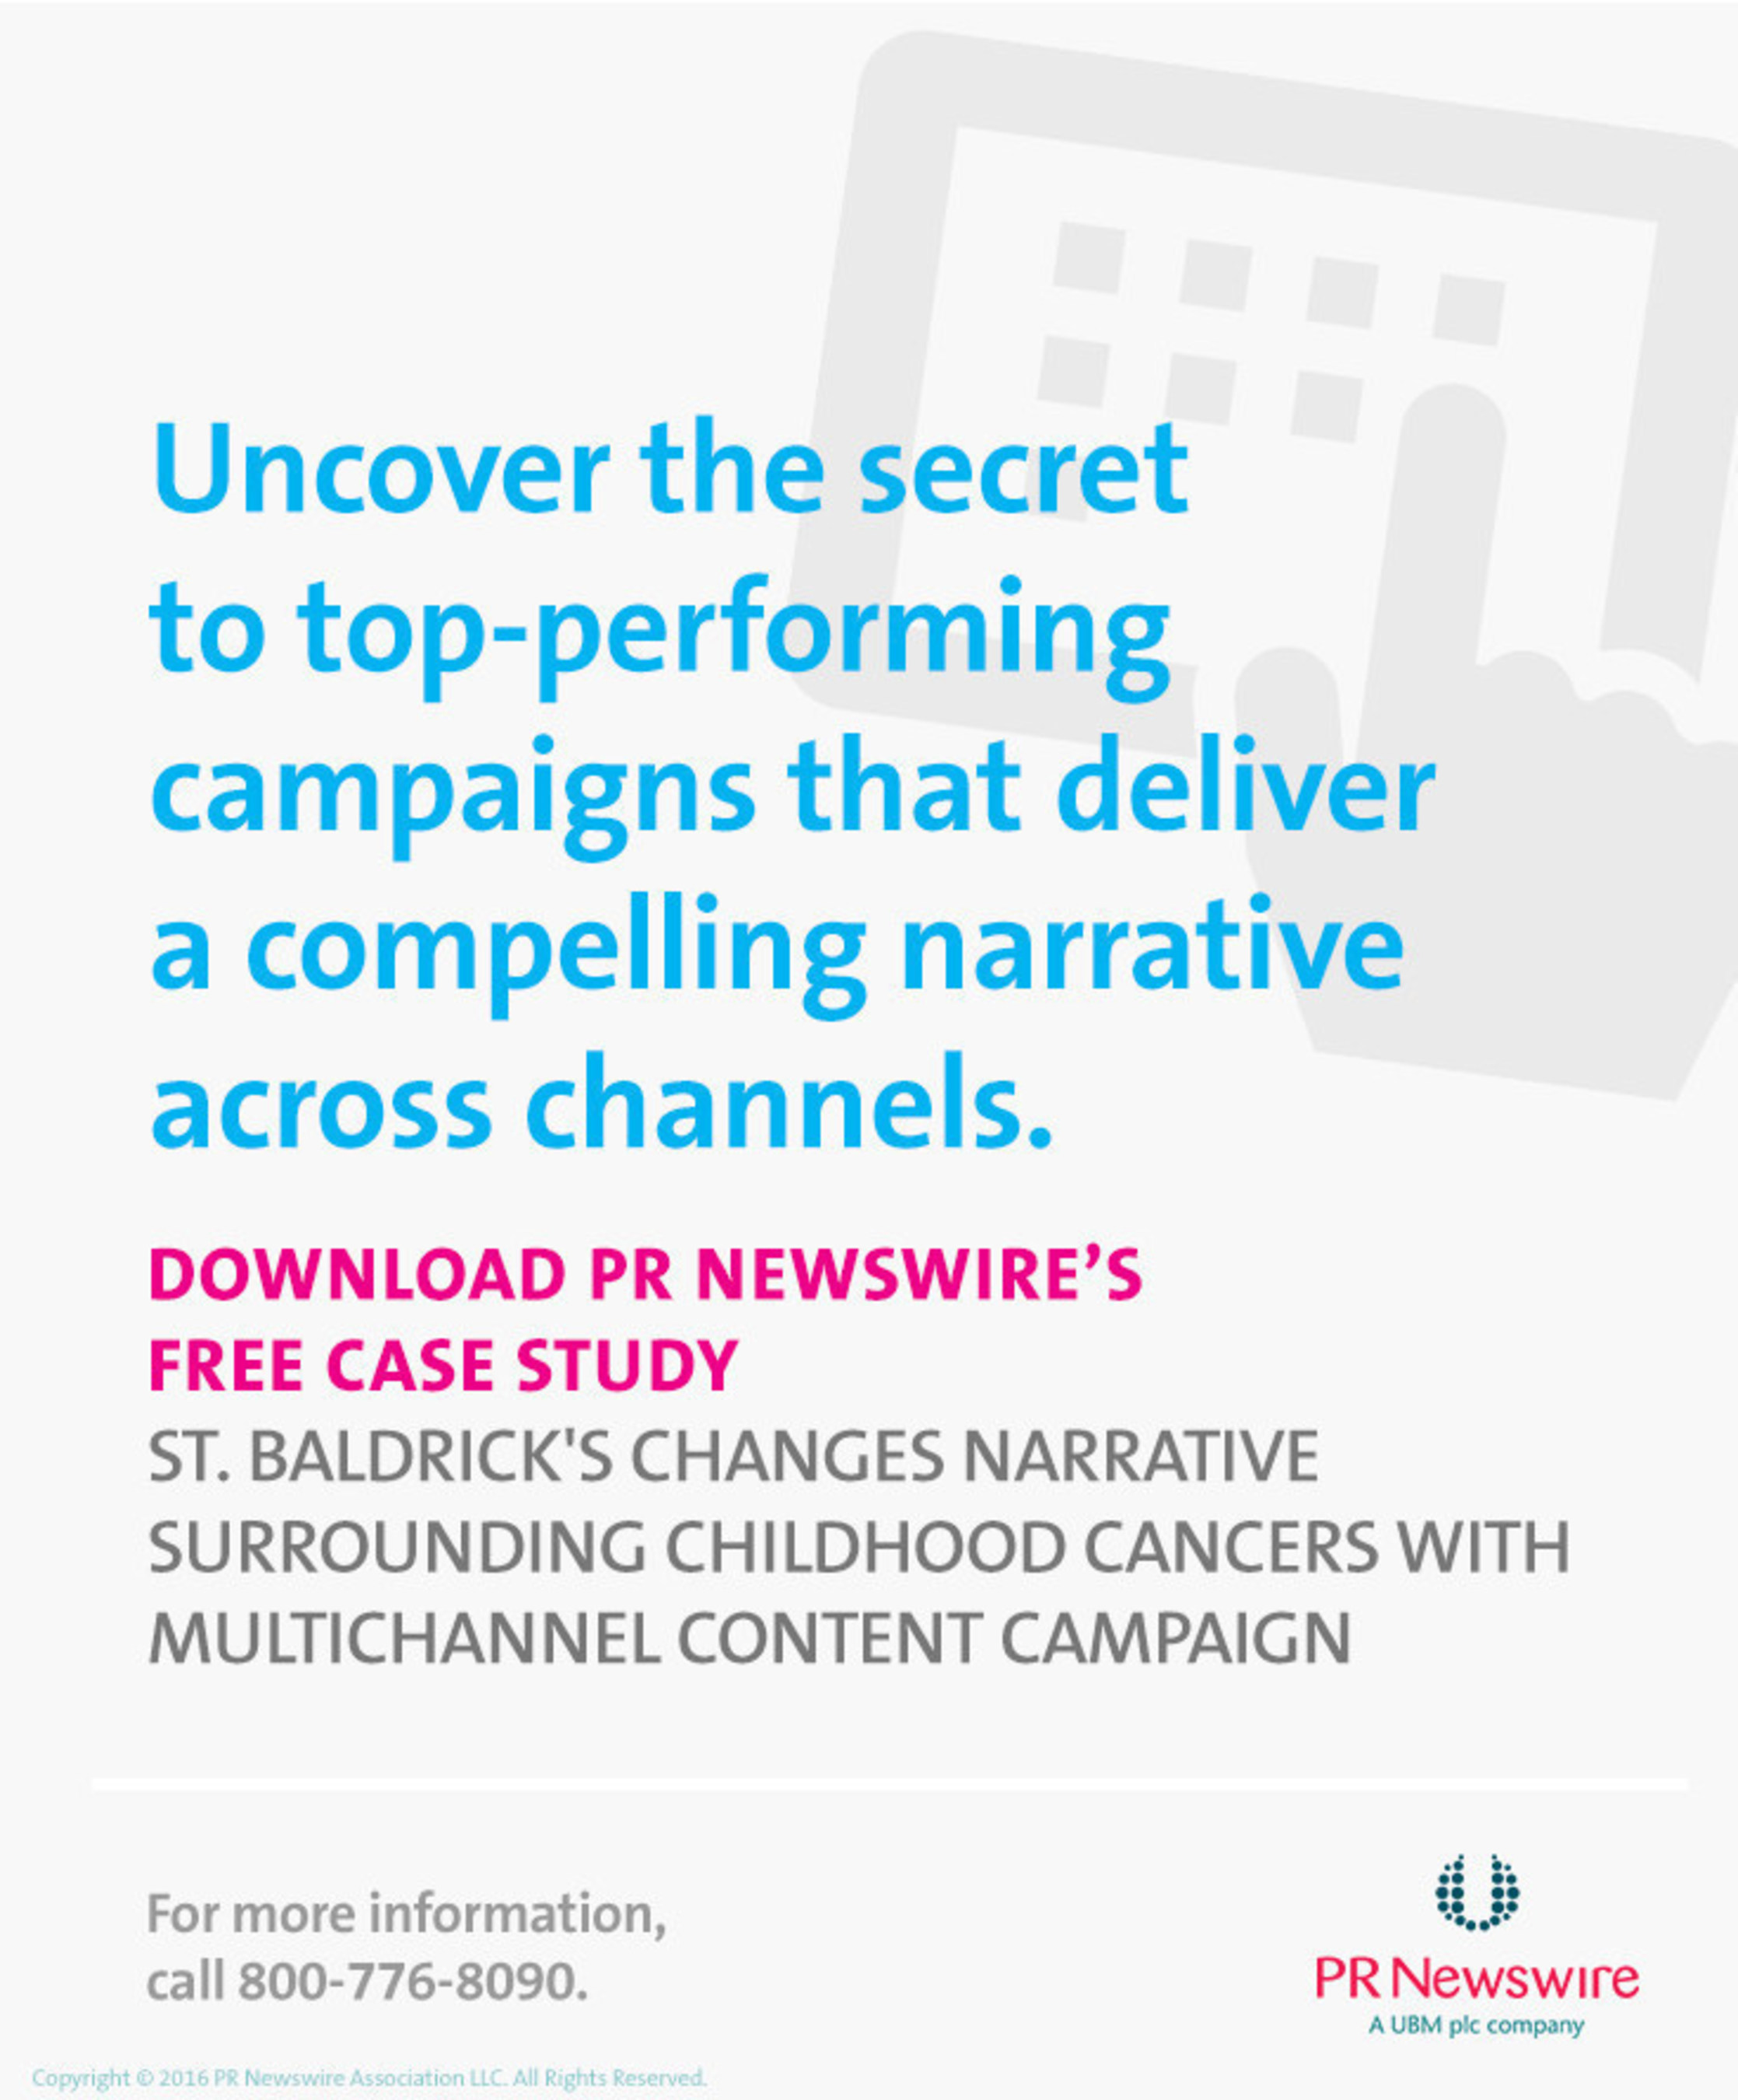 PR Newswire Case Study Explores How St. Baldrick's Increased Brand Awareness With Multichannel Campaign